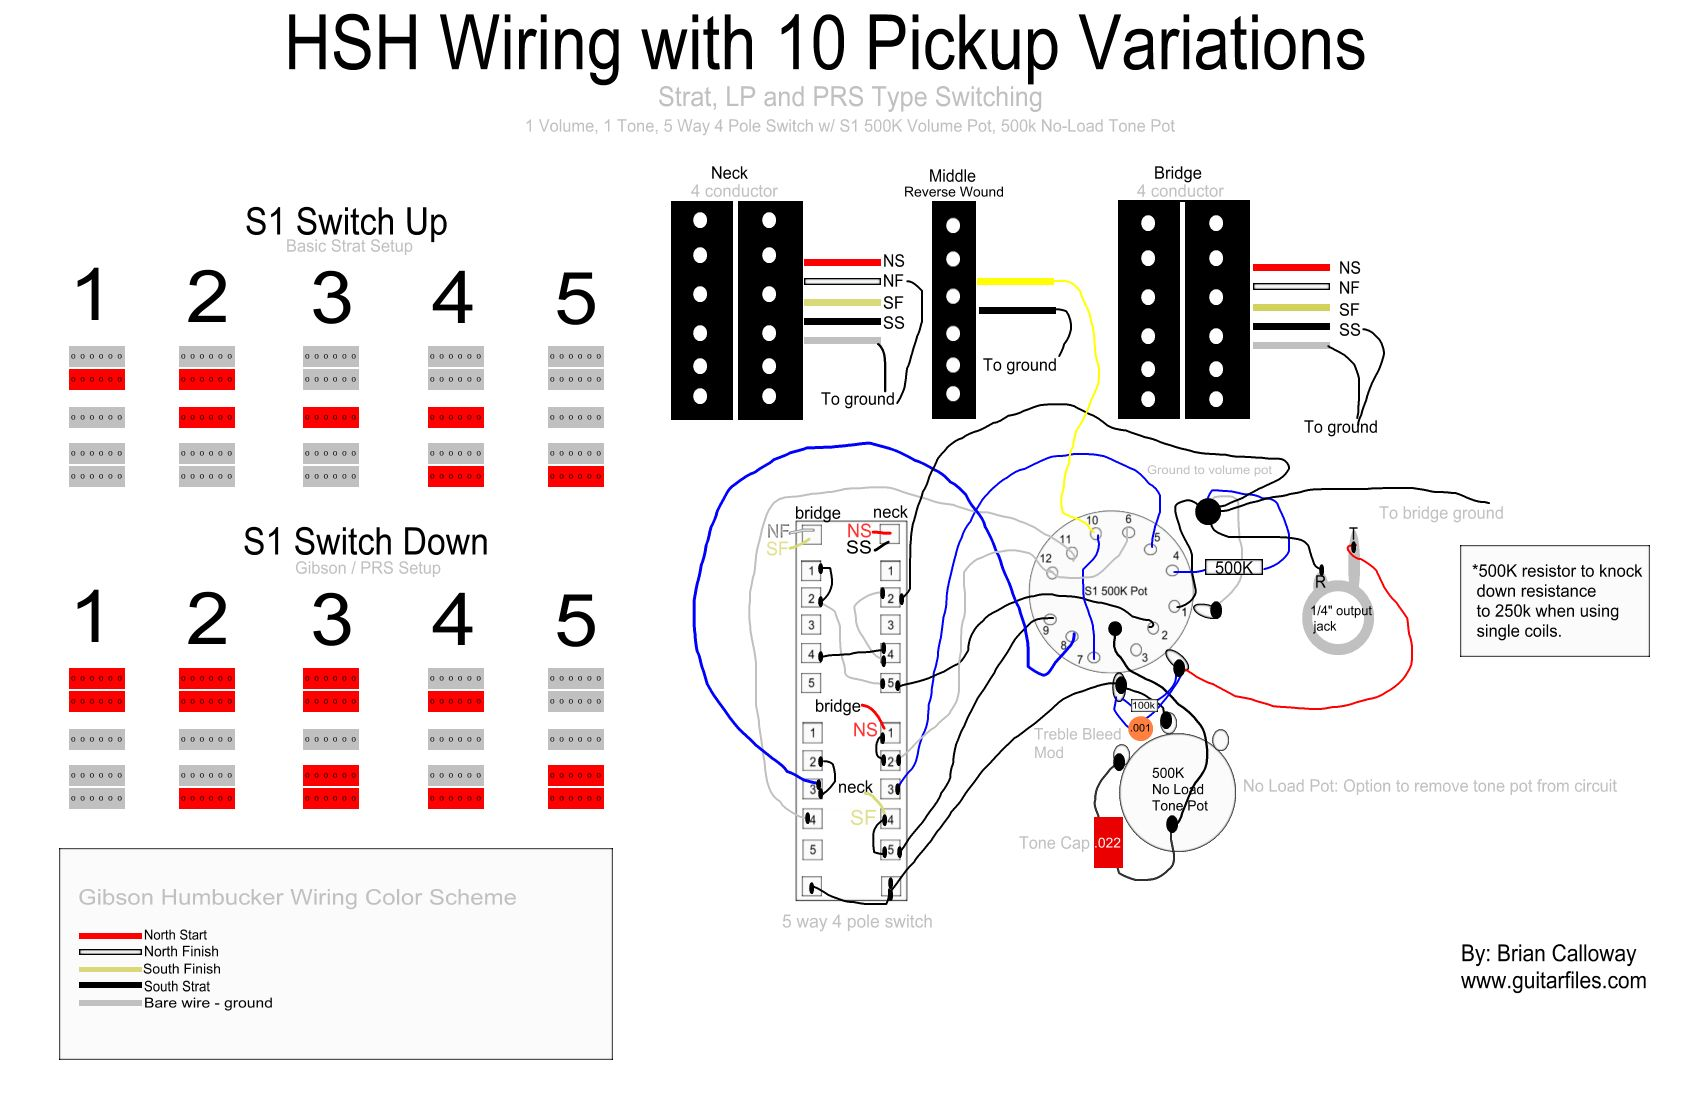 hight resolution of hsh guitar wiring 10 pickup combinations 4 pole switch and s1 switching system diagram by brian calloway